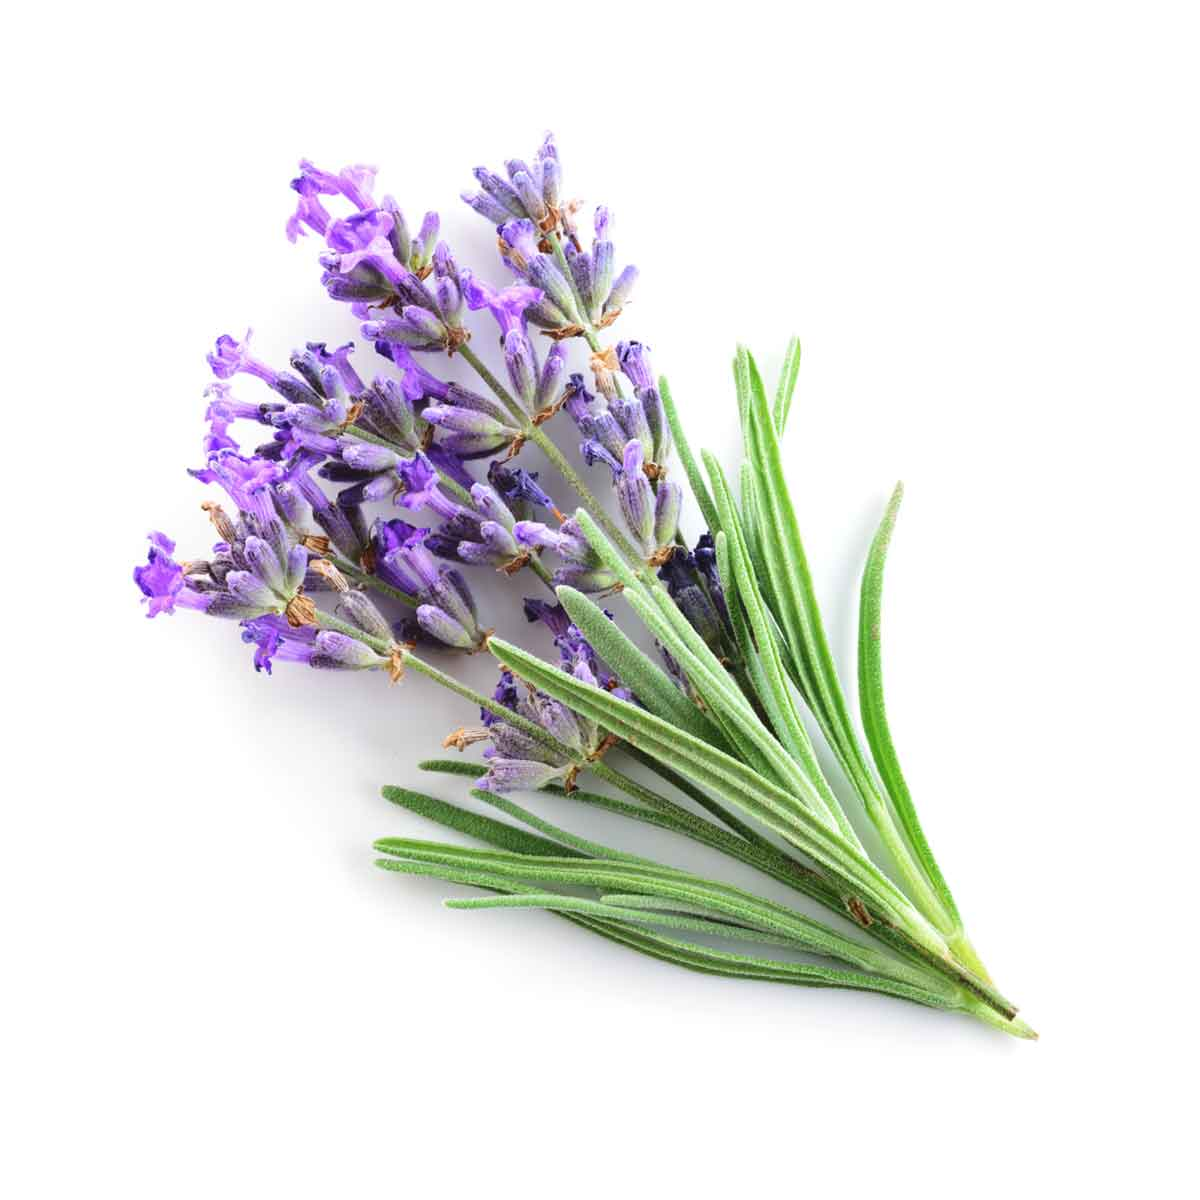 Chill contains botanical extracts found in lavender, delivering a familiar sweet flavor. -